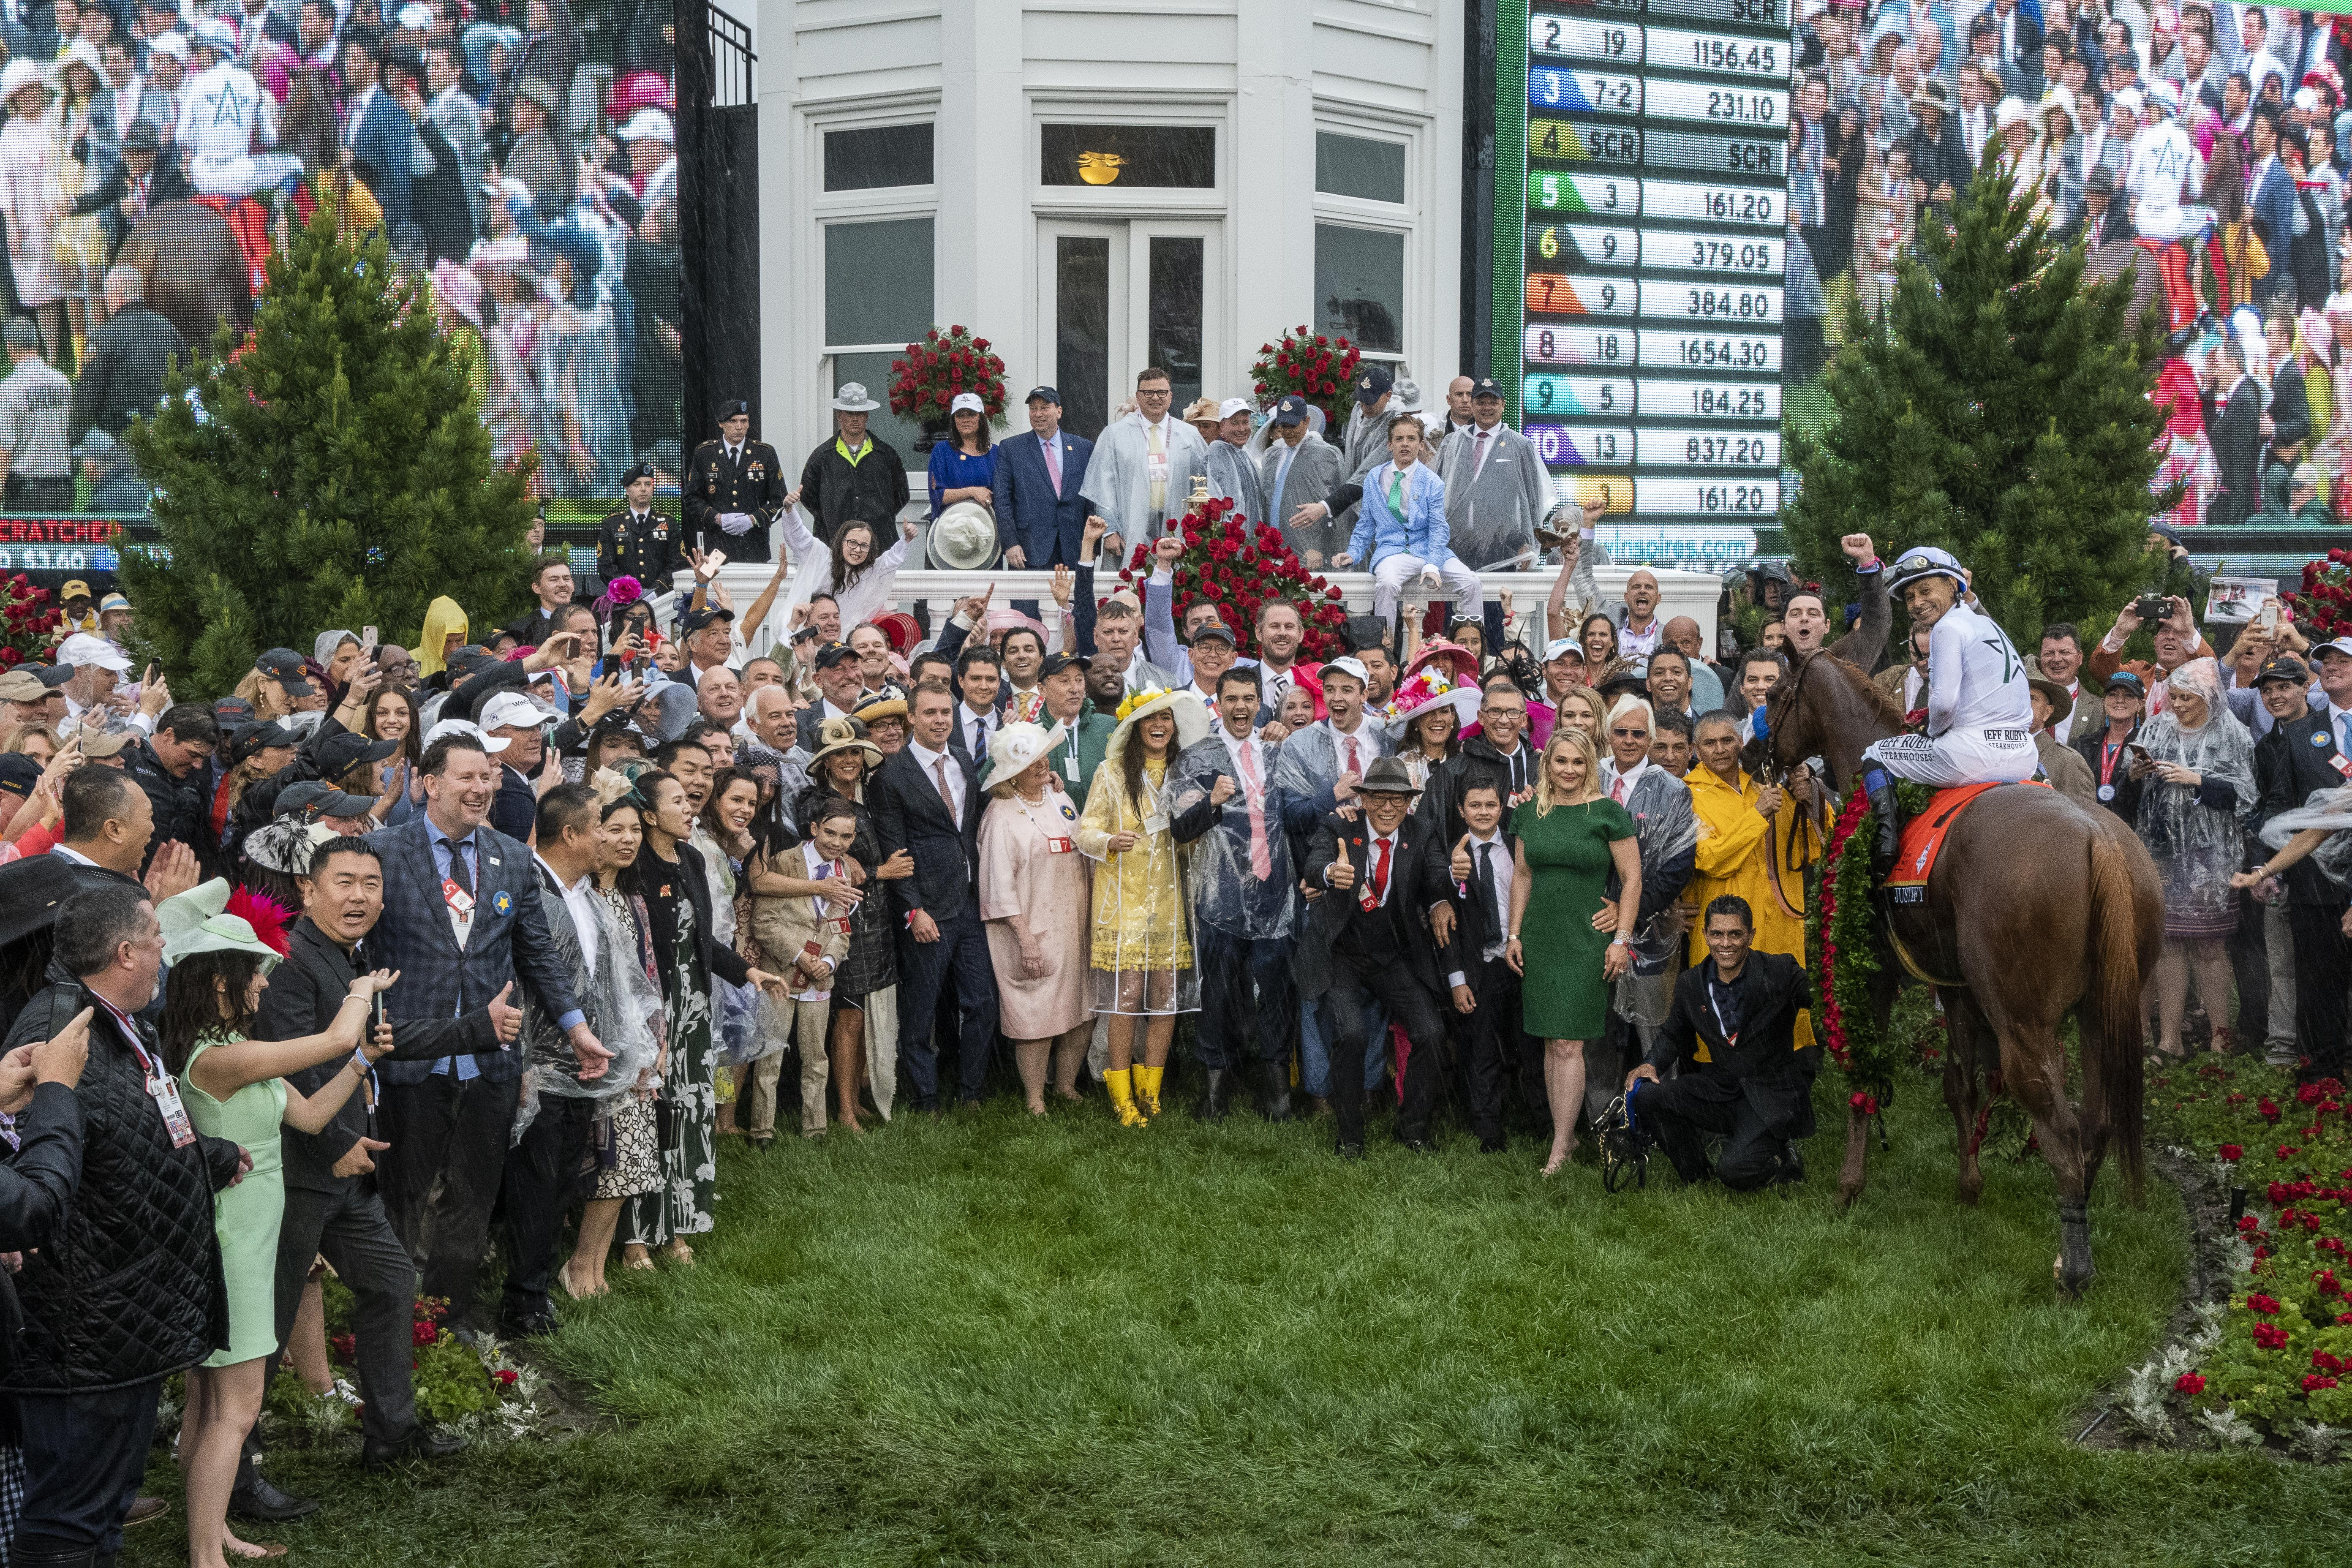 The crowded 2018 Kentucky Derby winner's circle.